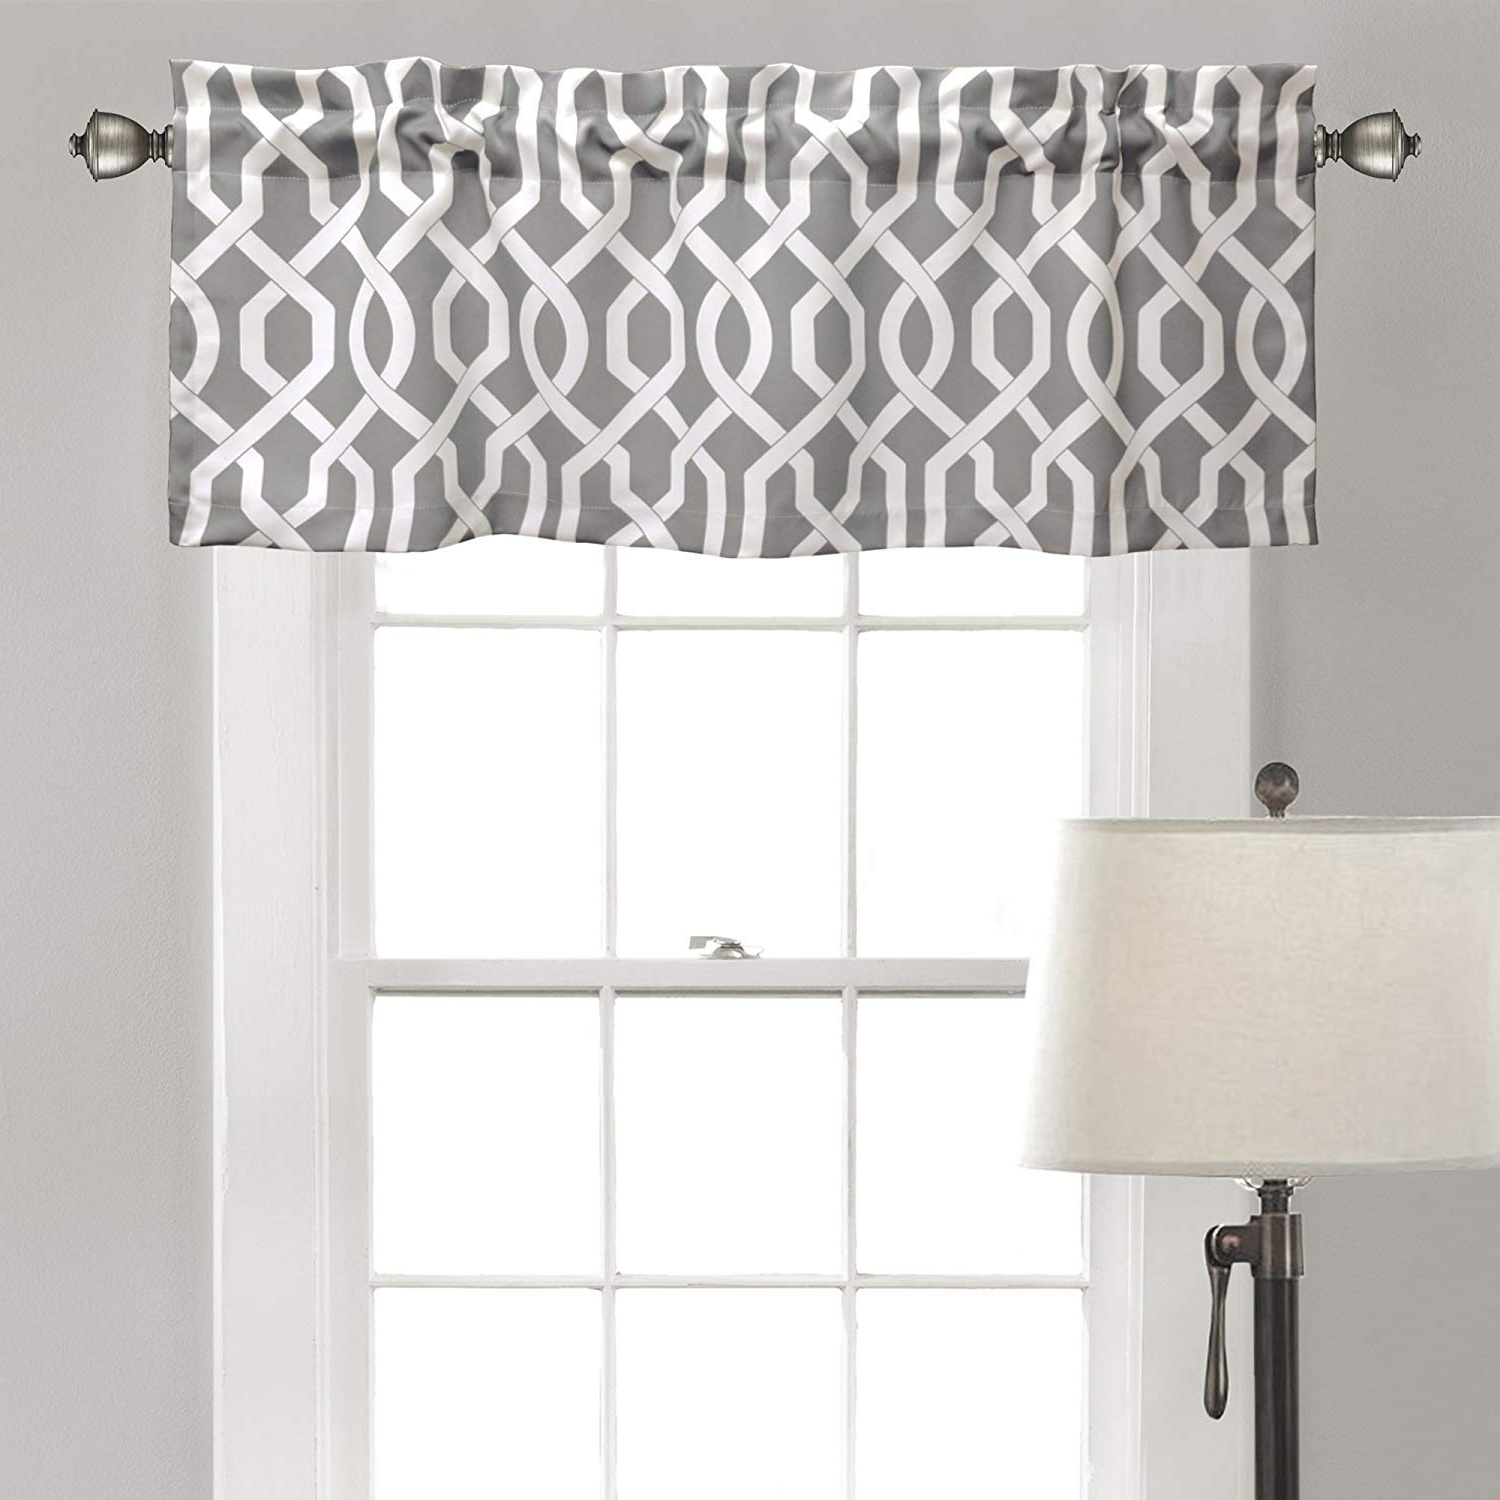 "Favorite Trellis Pattern Window Valances Within Diana Linen Edward Trellis Valance Patterned Window Curtain 18"" X 52"" (gray) (View 9 of 20)"